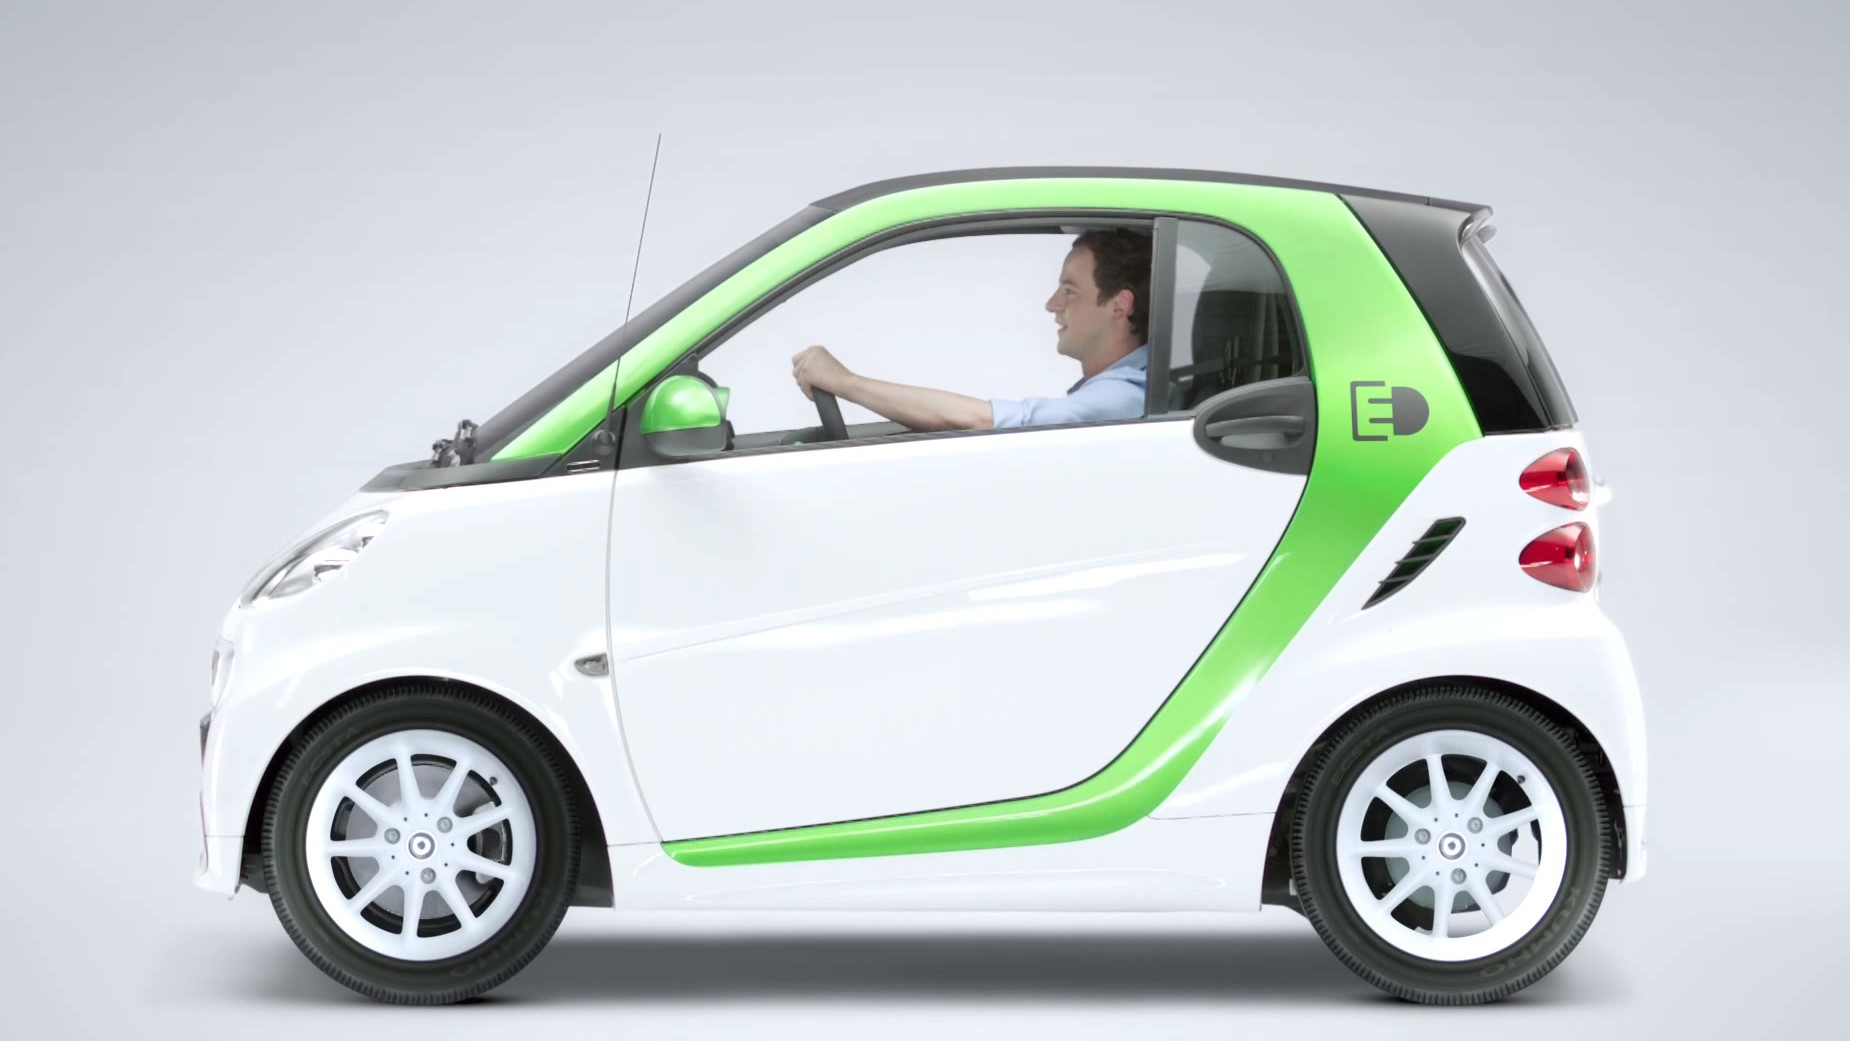 Video: Vorteile des Smart ED